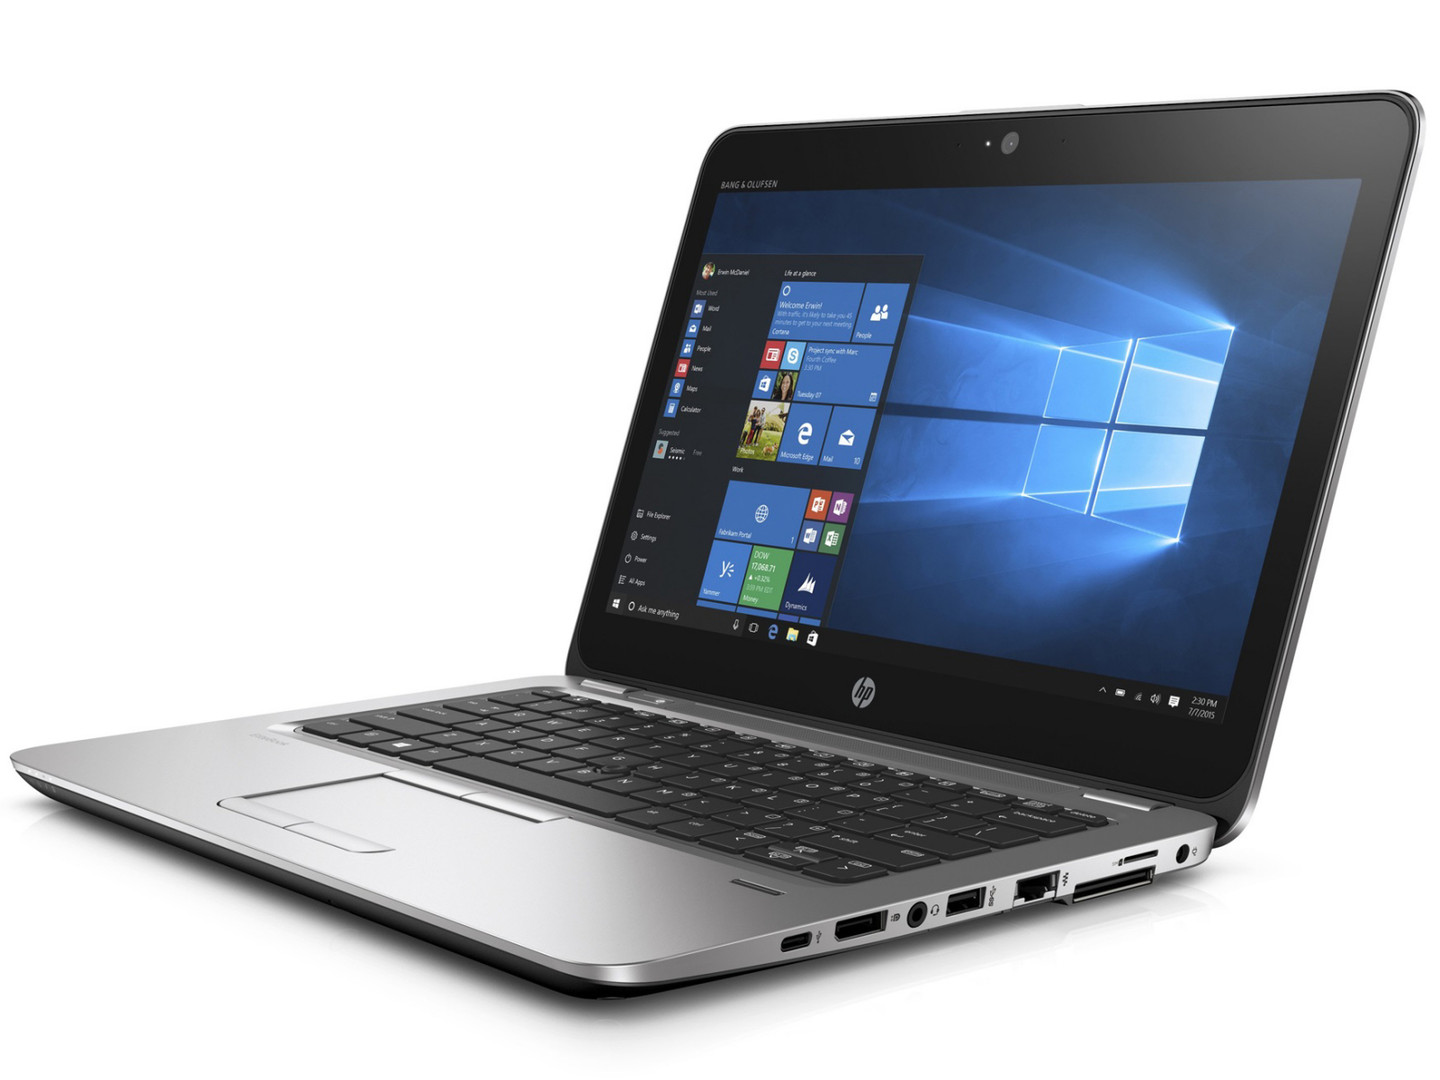 HP EliteBook 725 G3 Broadcom WLAN Drivers Windows 7